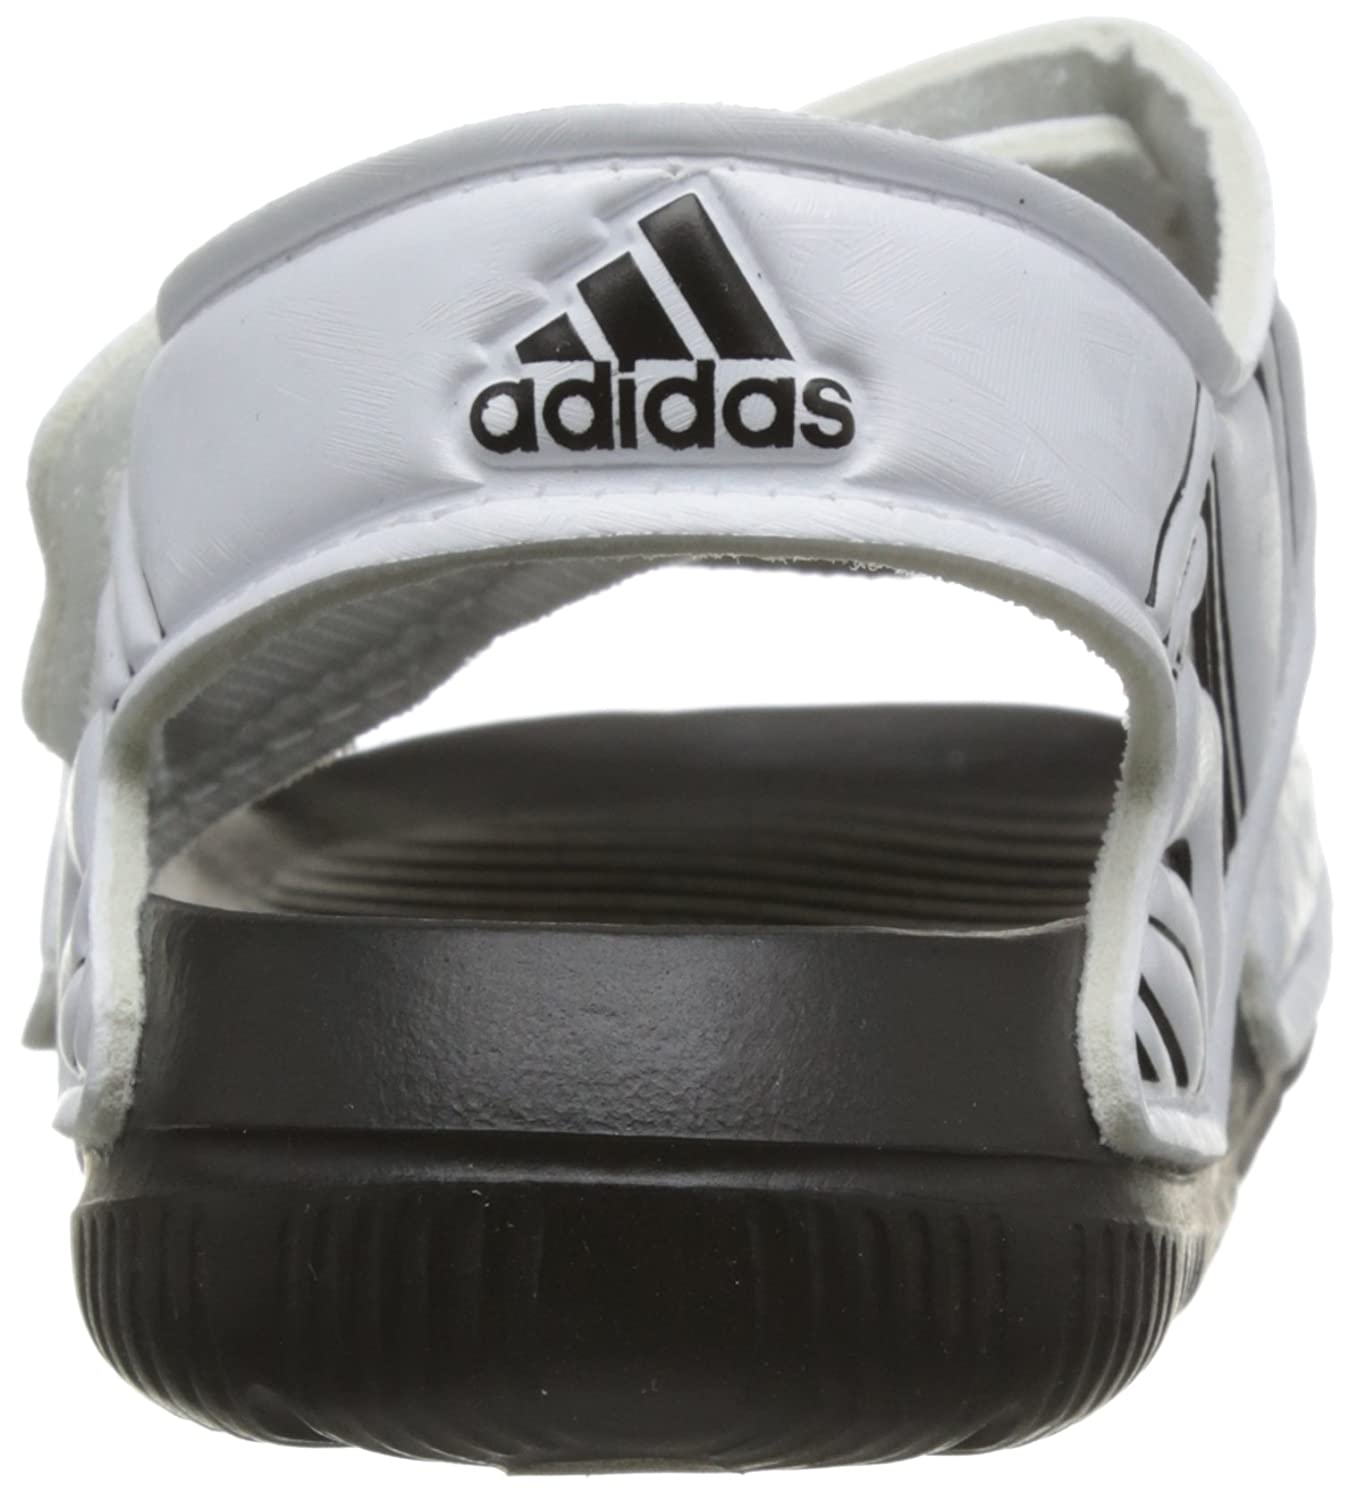 397a37afd12c adidas Unisex Kids  Star Wars Altaswim I Open Toe Sandals  Amazon.co.uk   Shoes   Bags